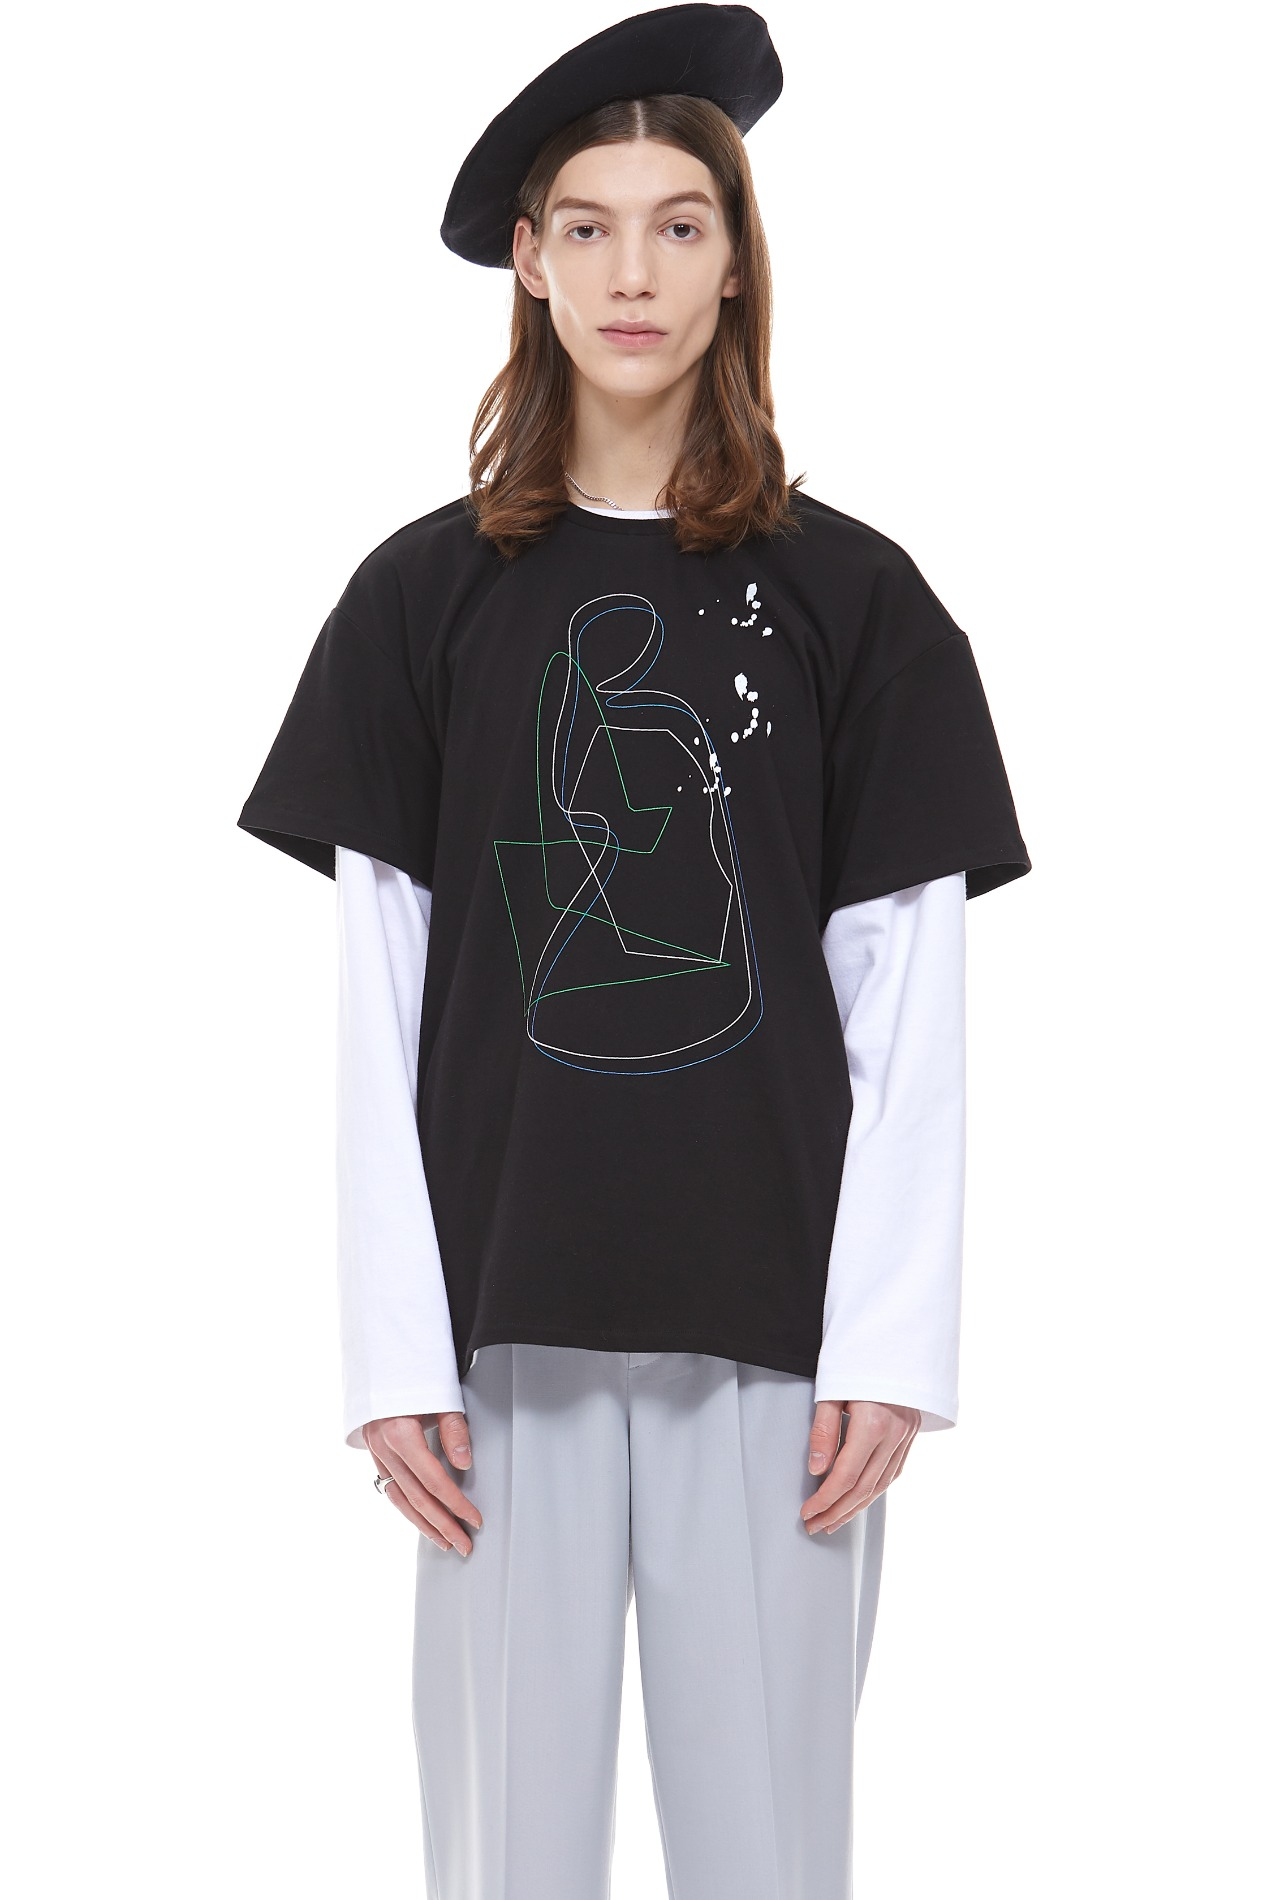 PAINTING ARCHIVE011 T-SHIRT(Black)